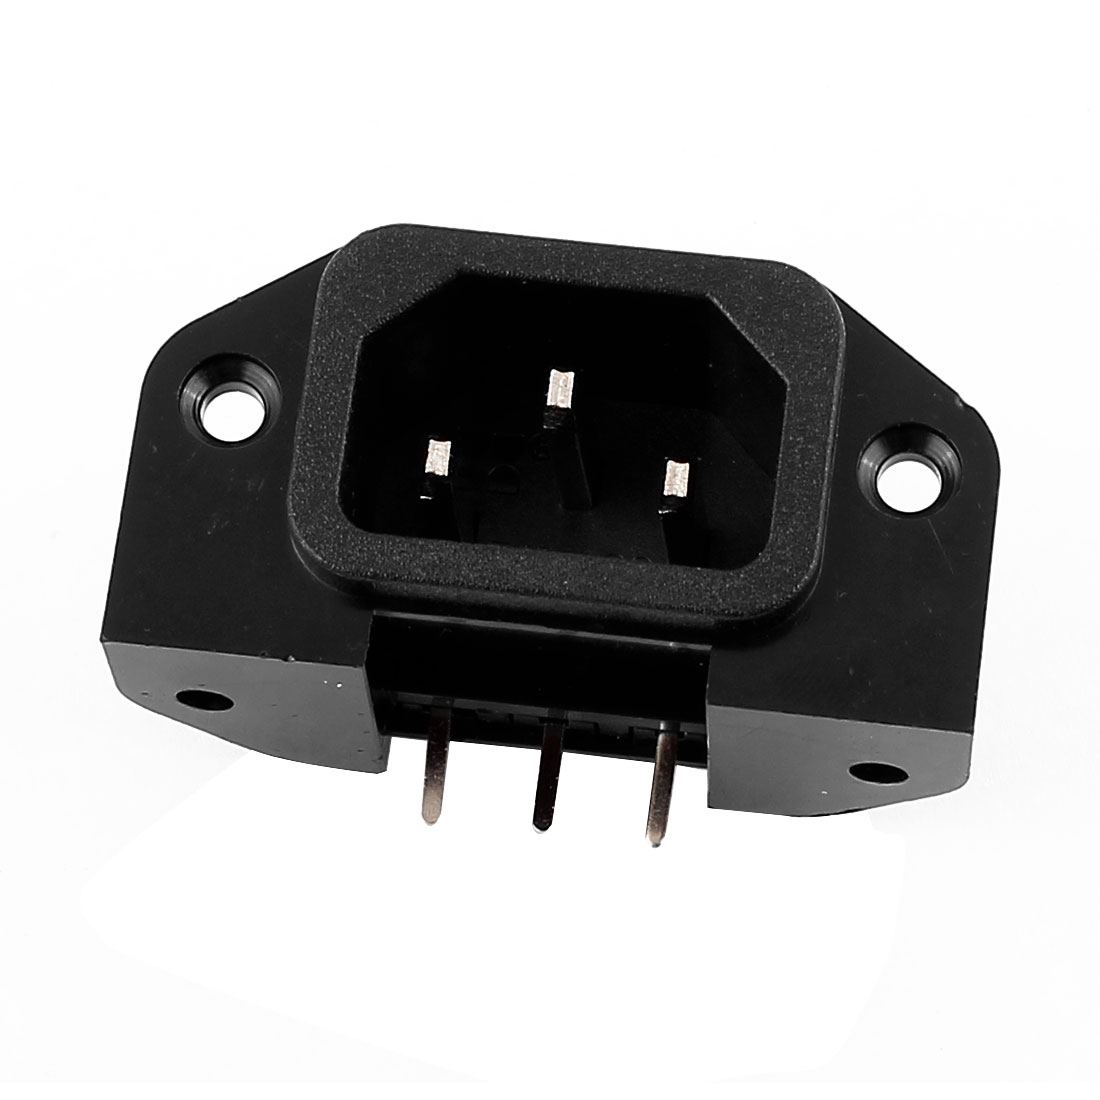 250VAC 15A 3 Terminals Screw Mounted IEC320 C14 Inlet Power Socket Black